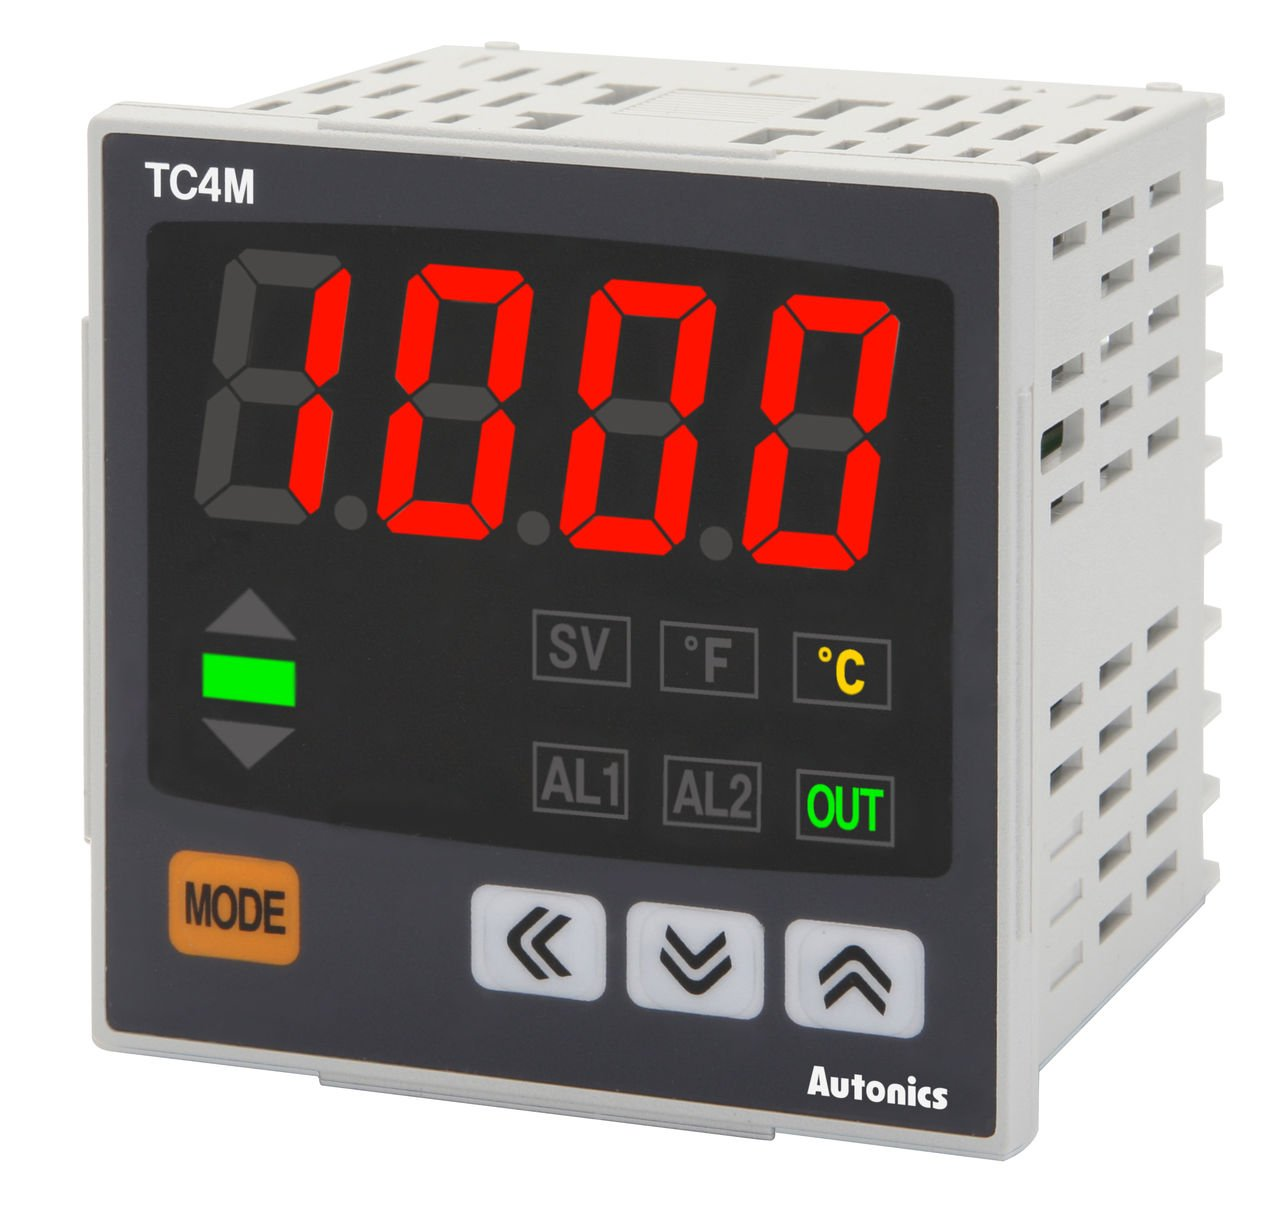 Autonics TC4M-N4R Temp Control, W72 x H72, Single display 4 Digit, PID Control, Relay & SSR Output, No Alarm Output, 100-240 VAC by Autonics USA, Inc